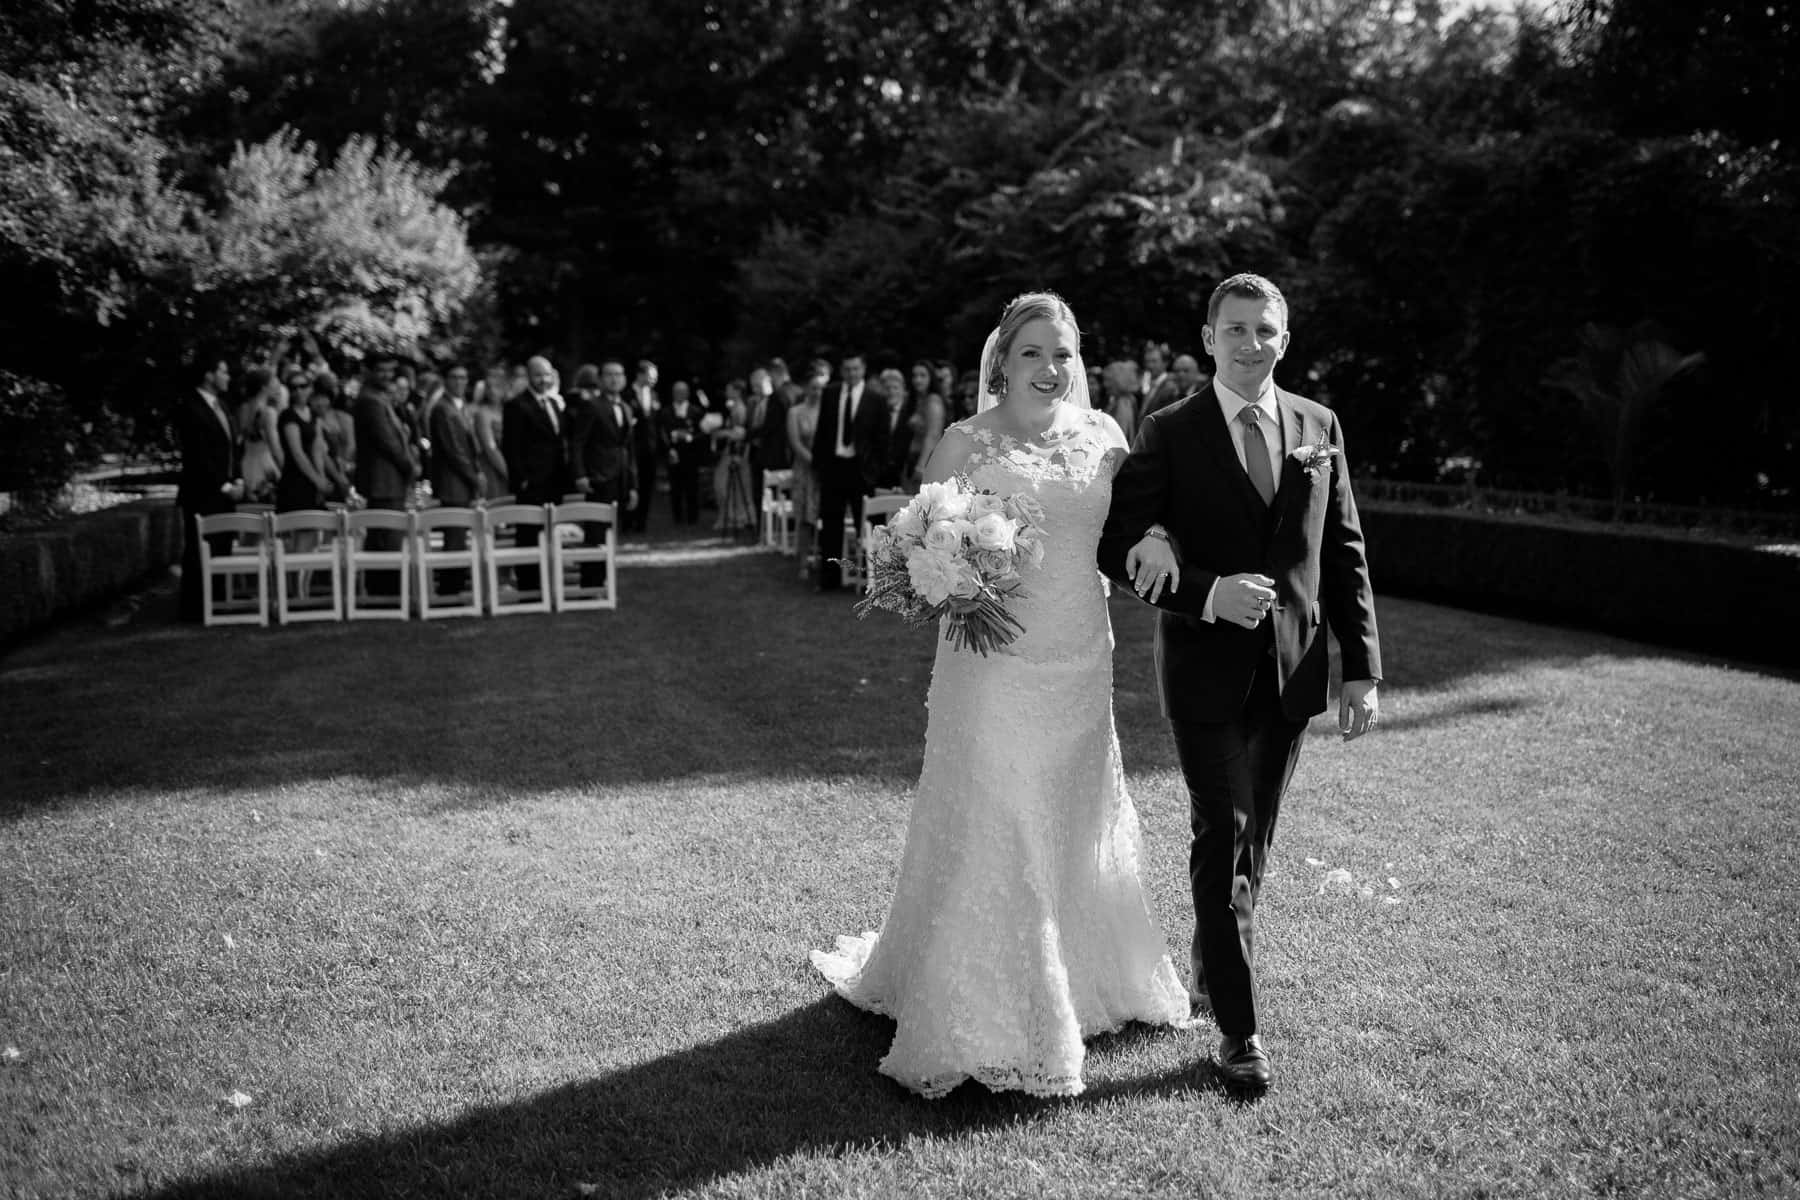 Bride and groom walking past photographer after wedding ceremony at McClain House, Estates of Sunnybrook.